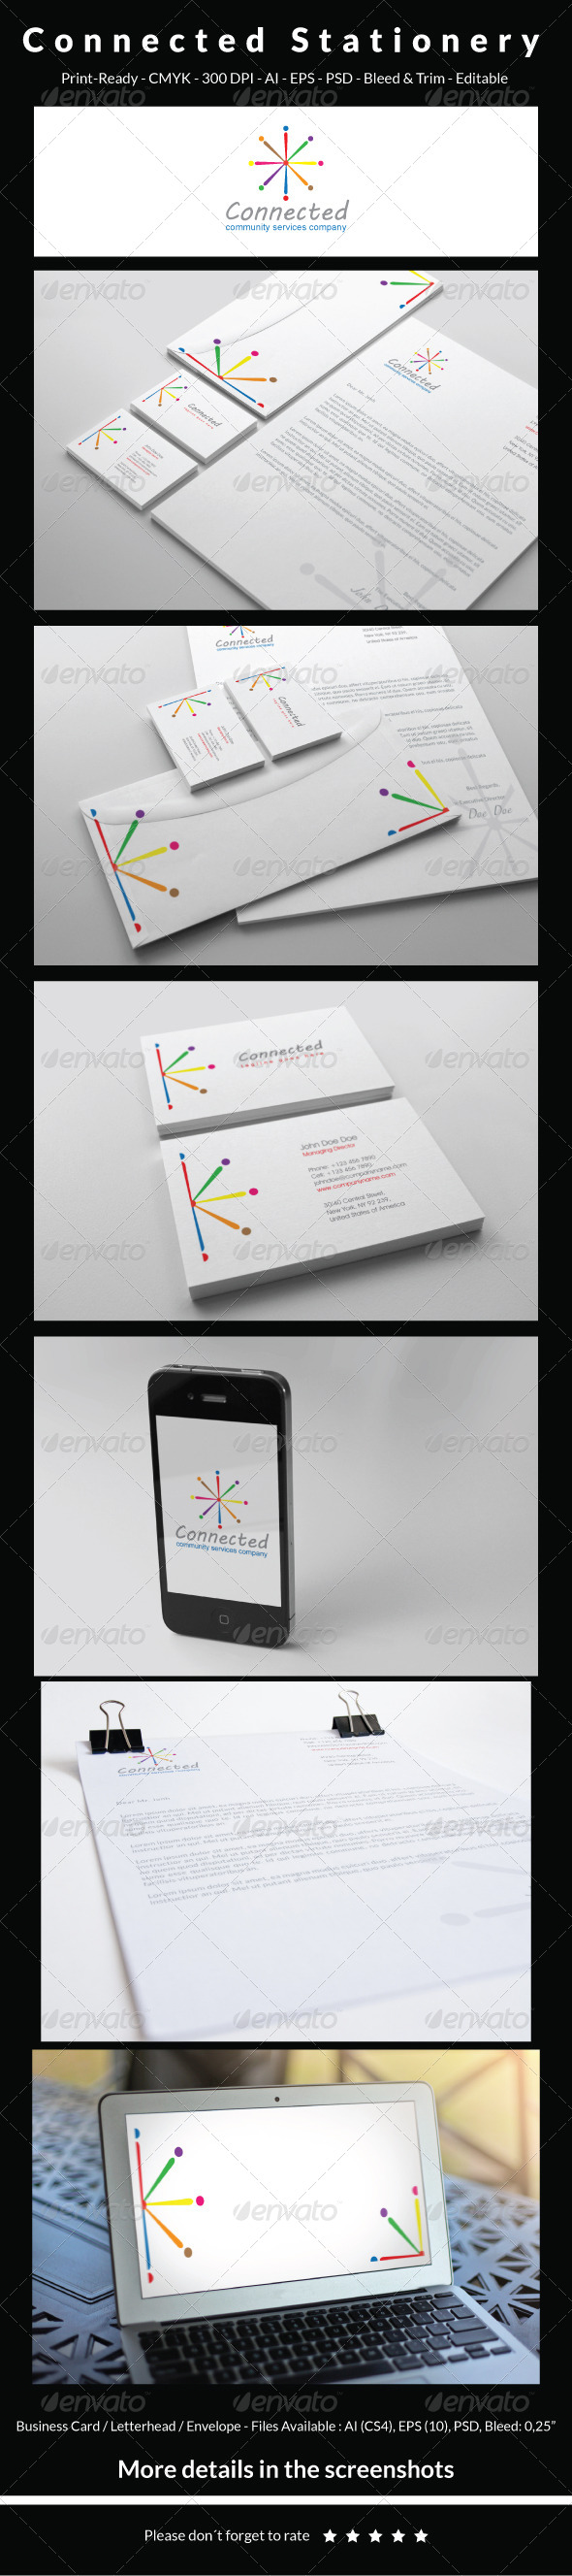 GraphicRiver Connected Stationery 5837945